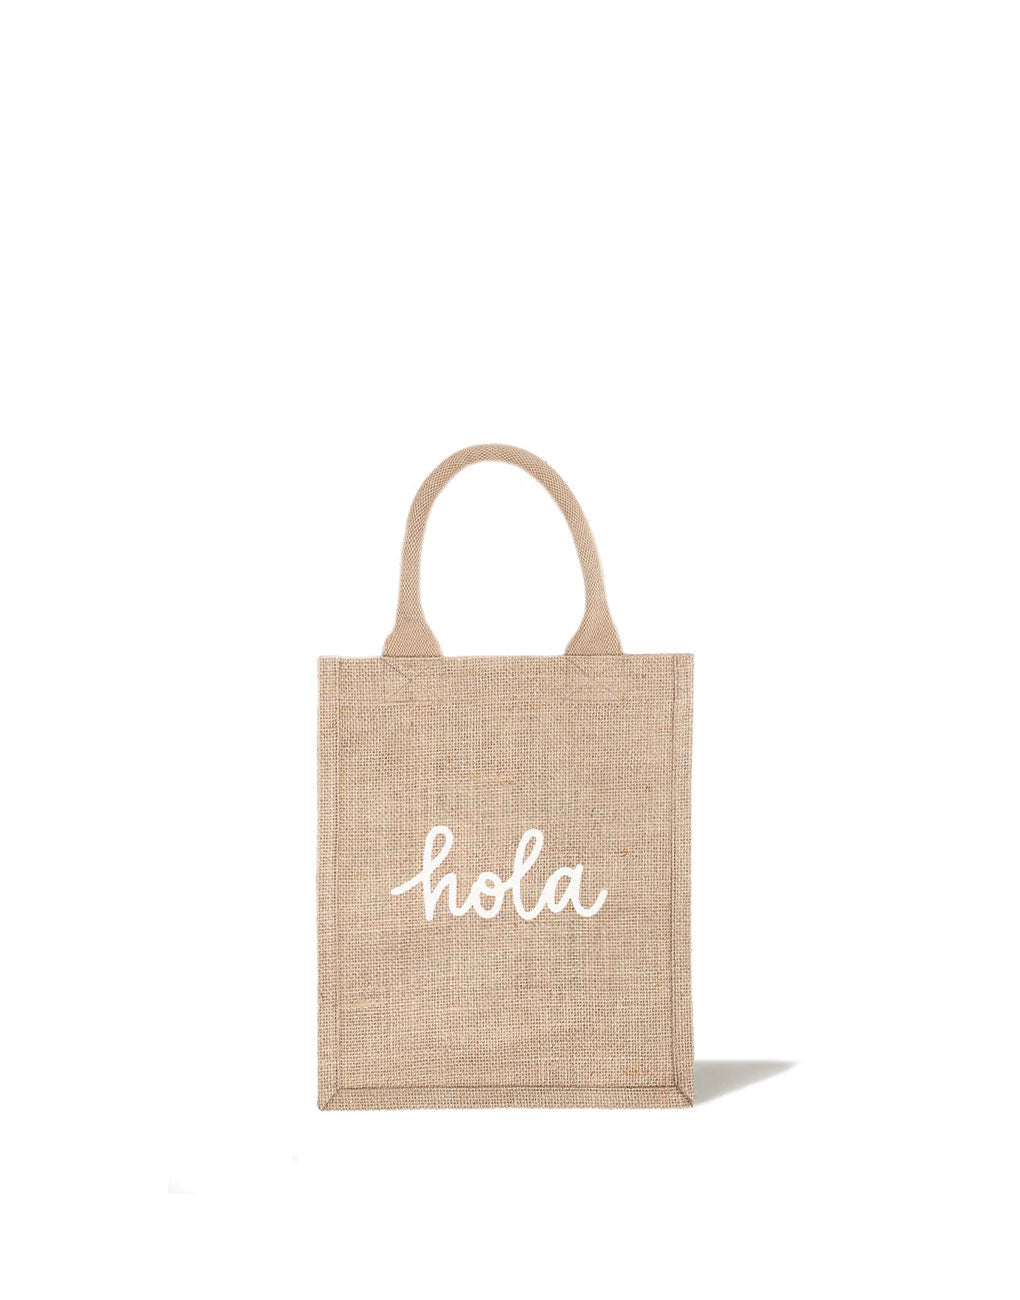 Medium Hola Reusable Gift Tote In White Font | The Little Market